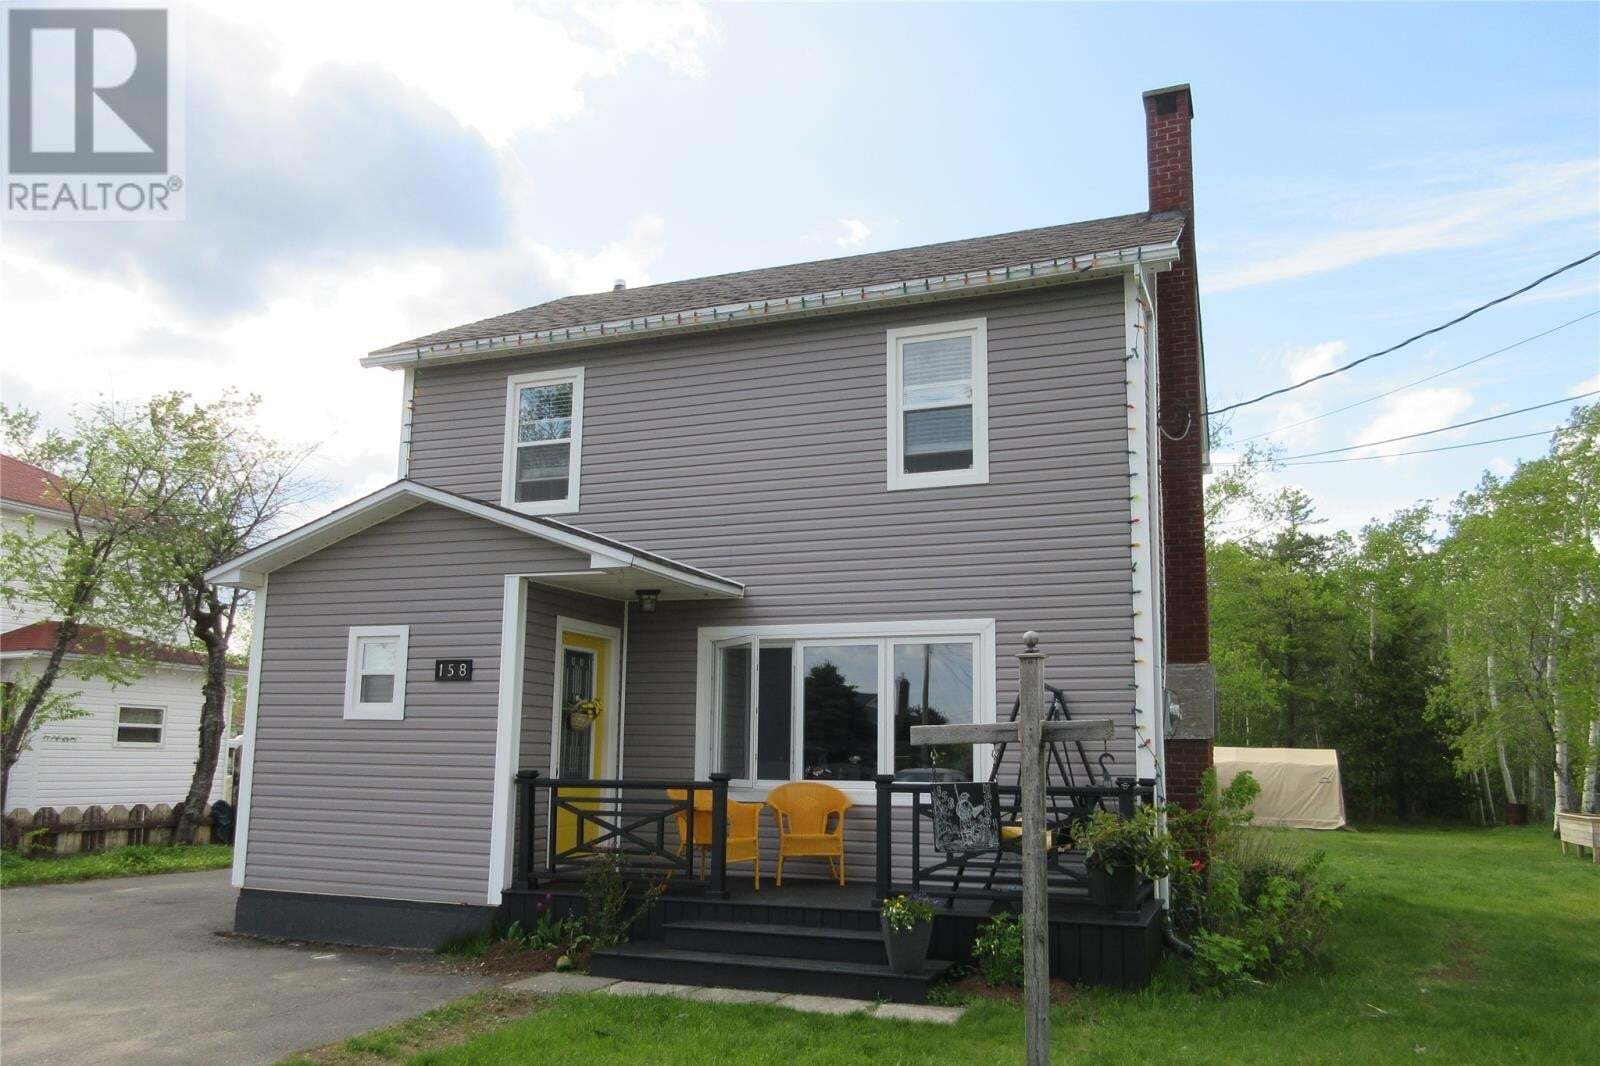 House for sale at 158 Main St Bishop's Falls Newfoundland - MLS: 1212373